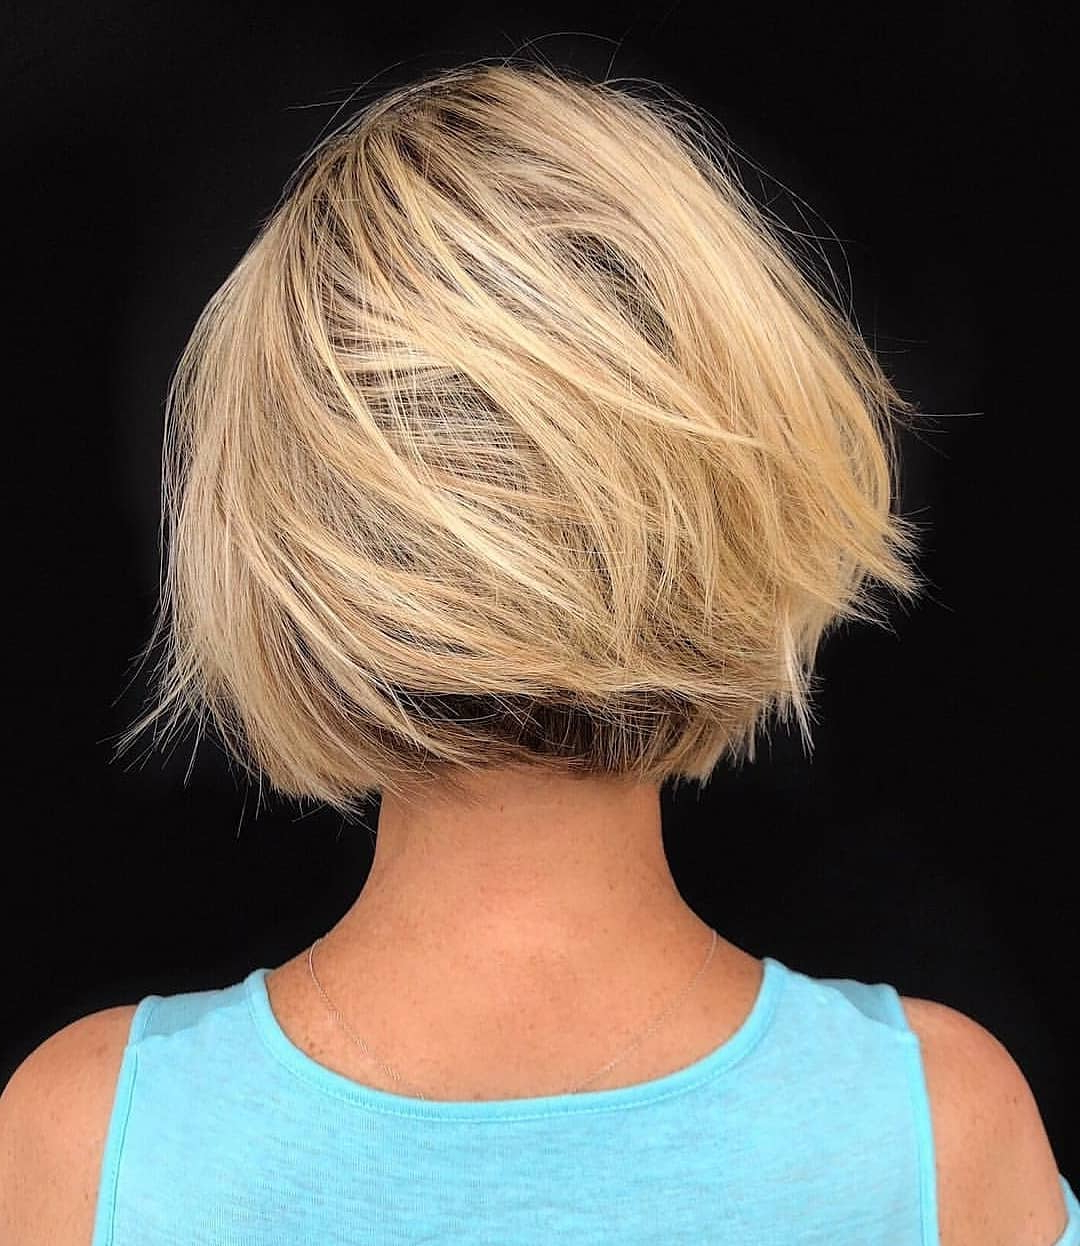 Top 10 Low Maintenance Short Bob Cuts For Thick Hair, Short Regarding Easy Maintenance Short Haircuts (View 23 of 25)